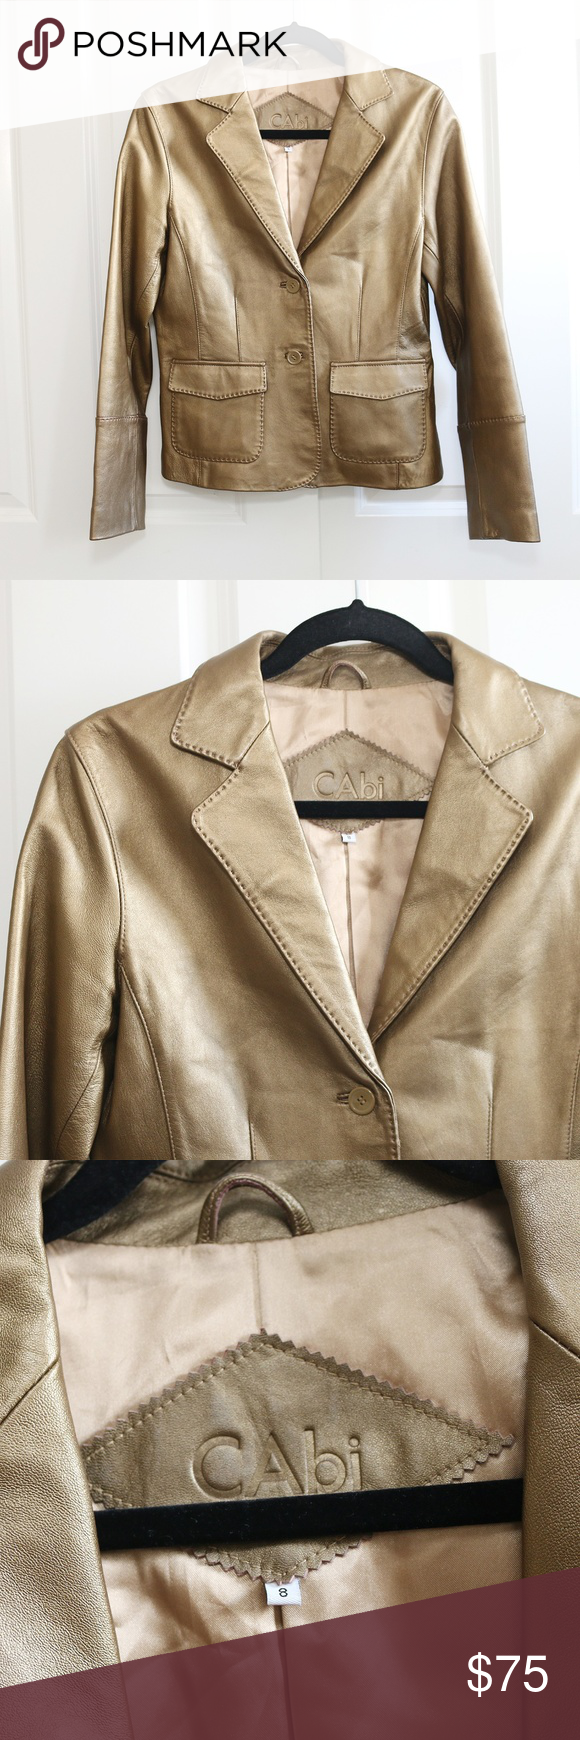 26ac38c1c CAbi Genuine Leather Jacket Gold Bronze Size 8 CAbi - women's 100 ...